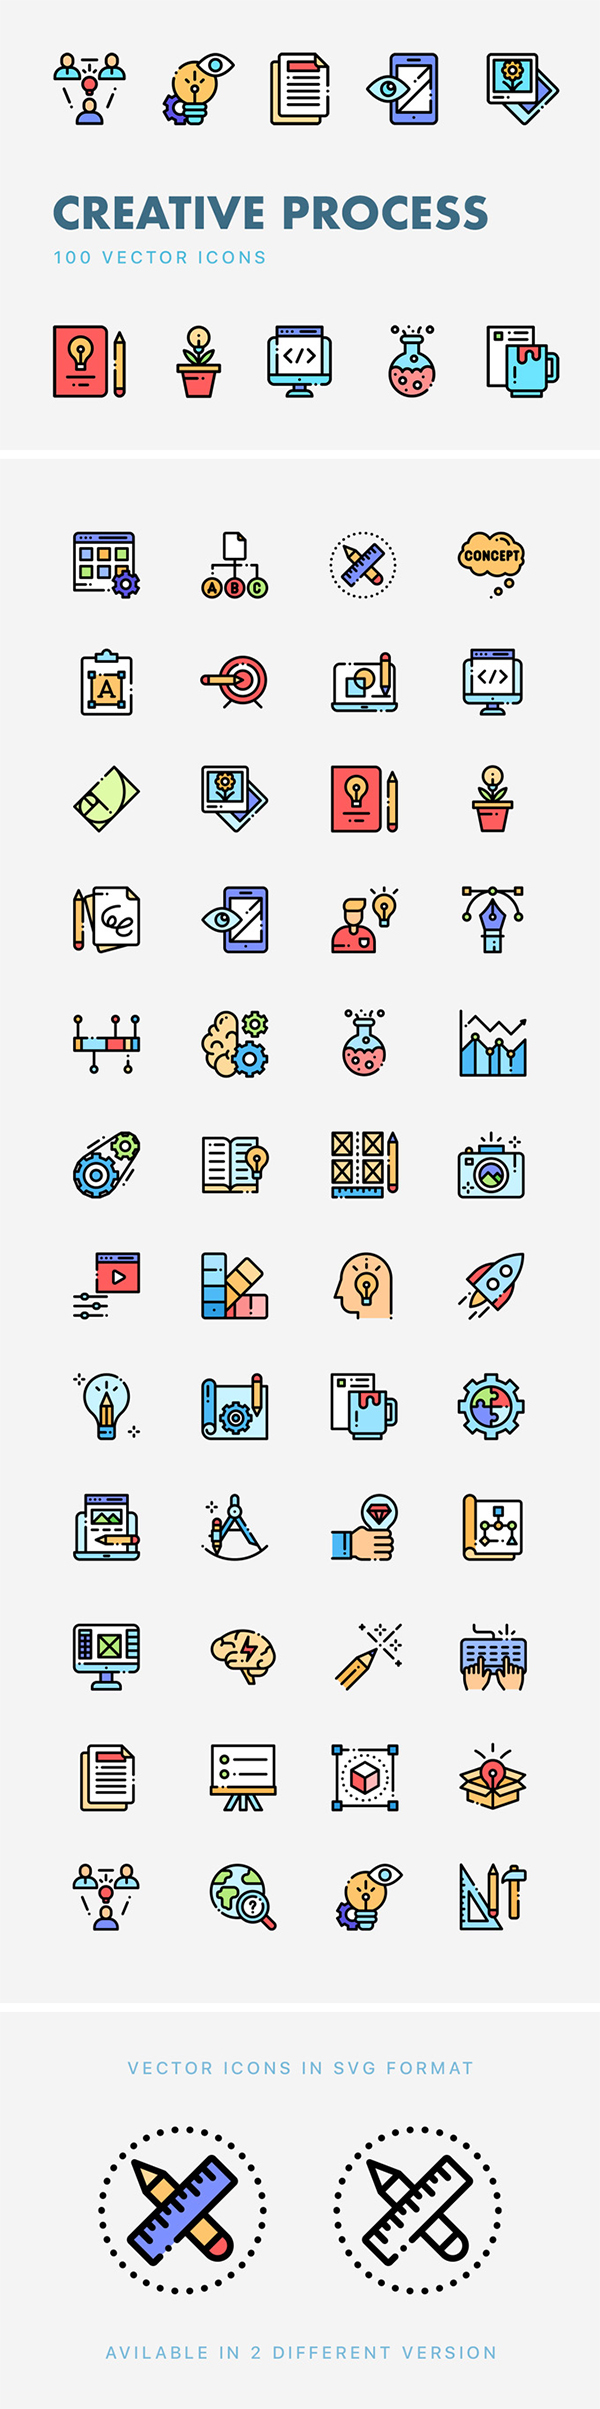 Creative Process Vector Icons